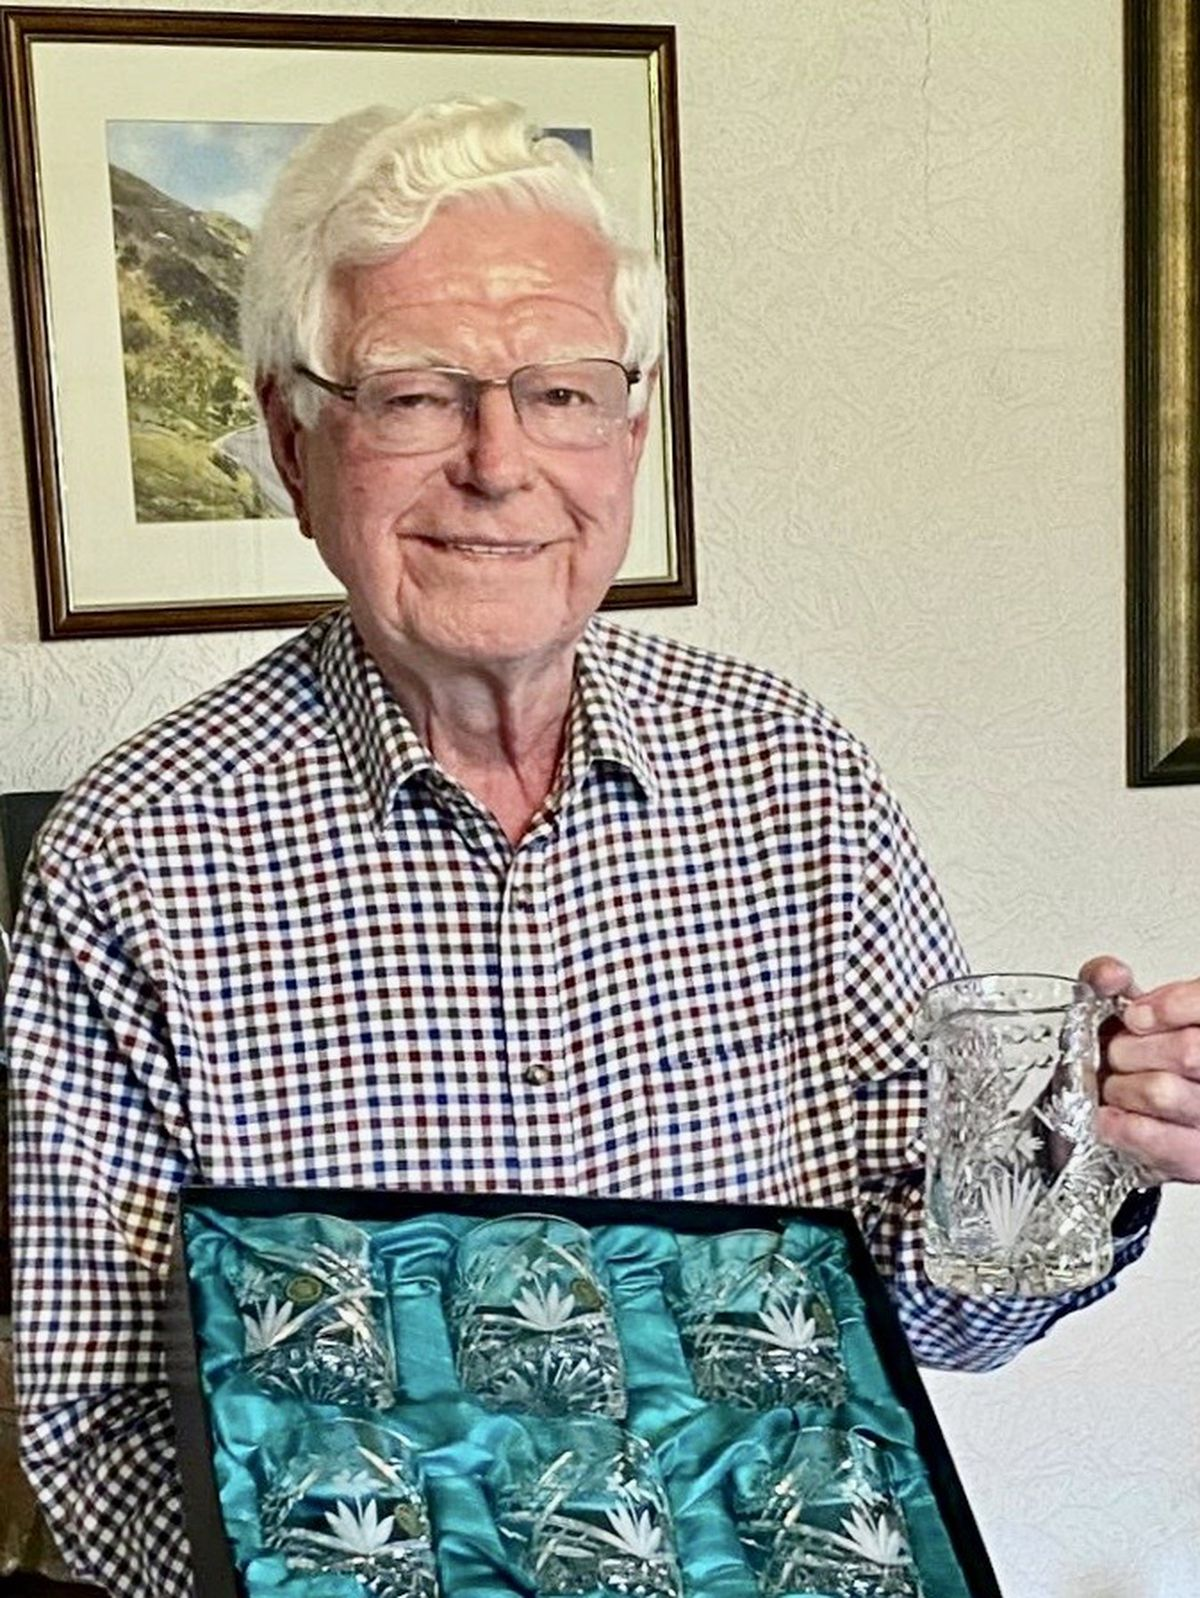 Aled Griffiths OBE received a set of Welsh crystal whisky glasses and an inscribed crystal jug thanking him for his 39 years of service to the BEMB Research and Education Trust